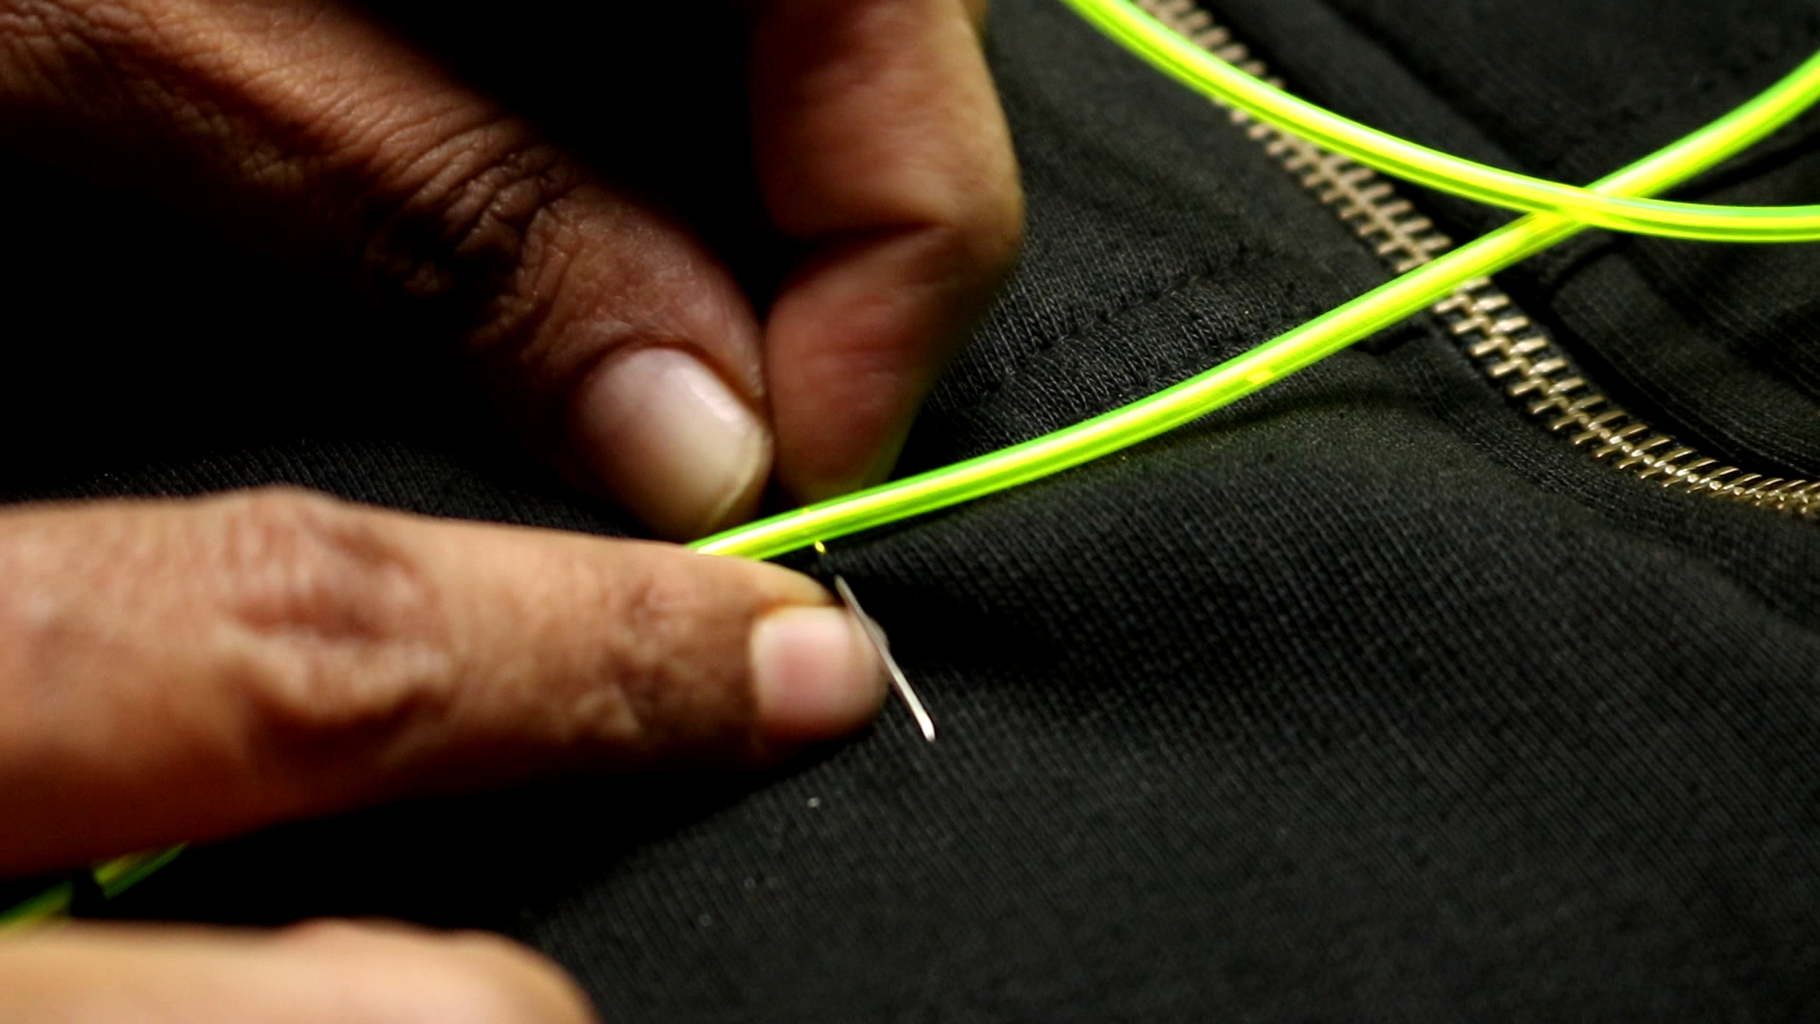 Sewing the Jacket!